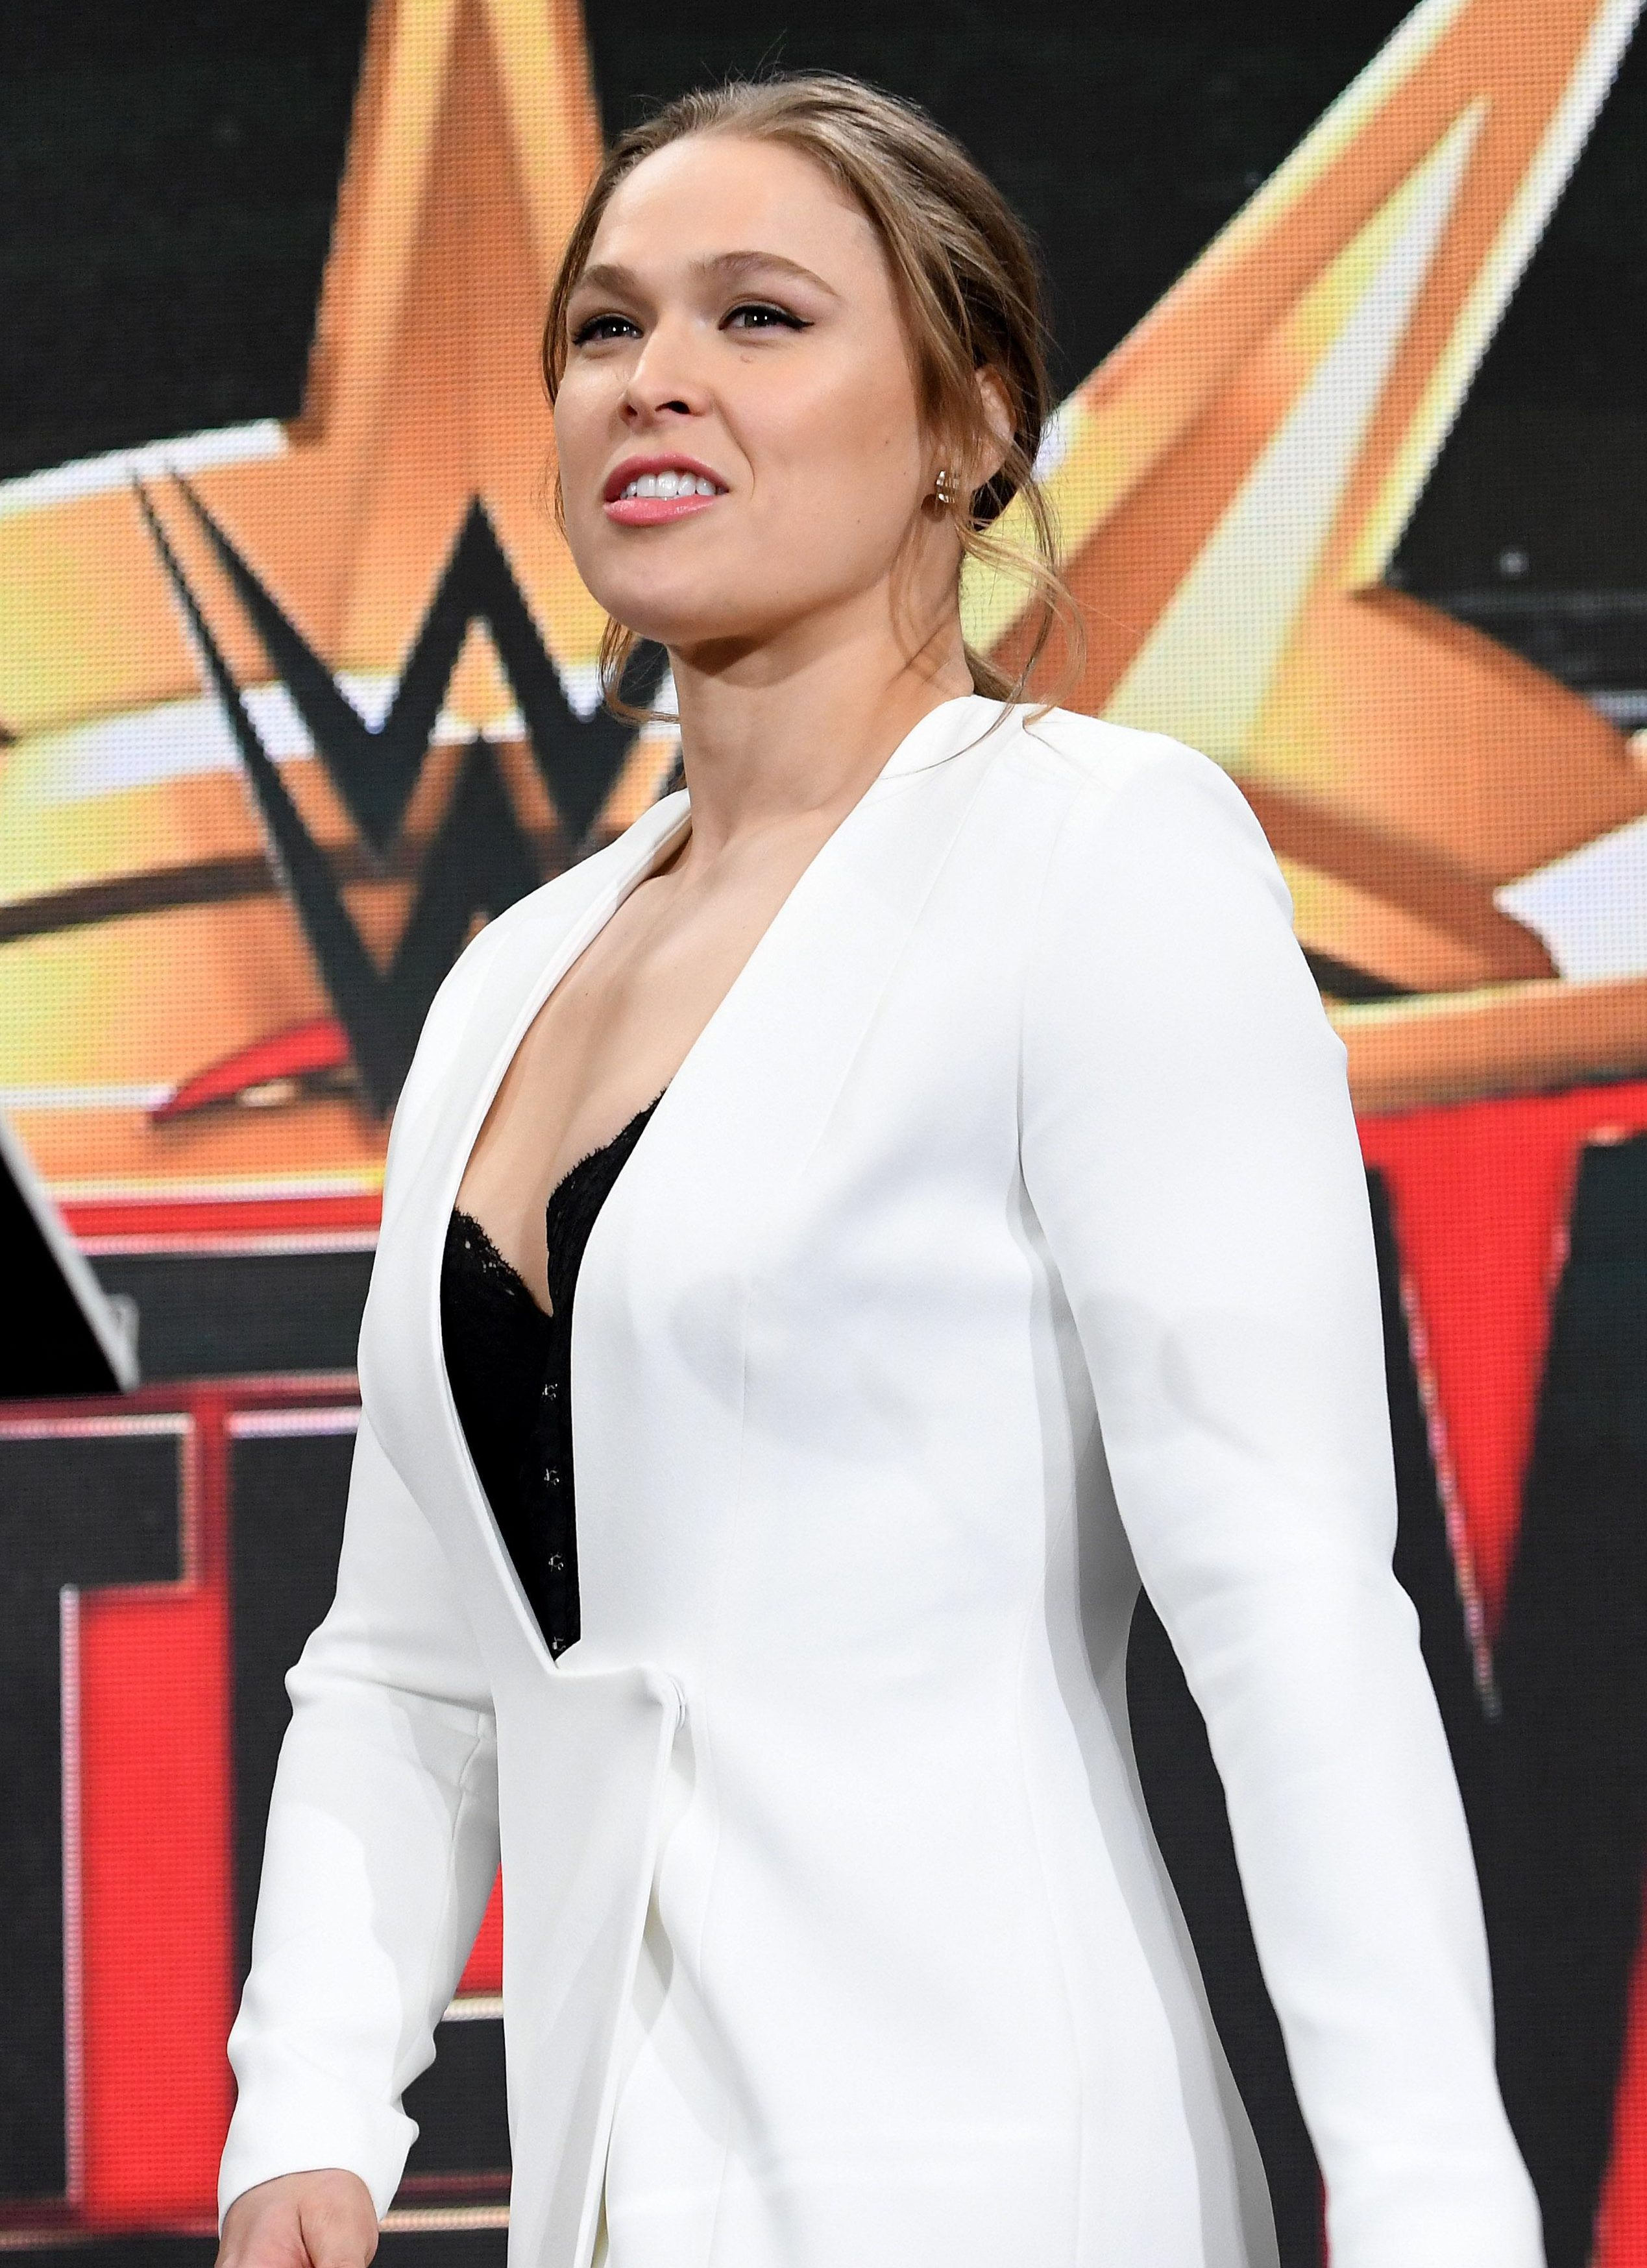 Ronda Rousey hopes to be a big name in WWE like she has been in UFC